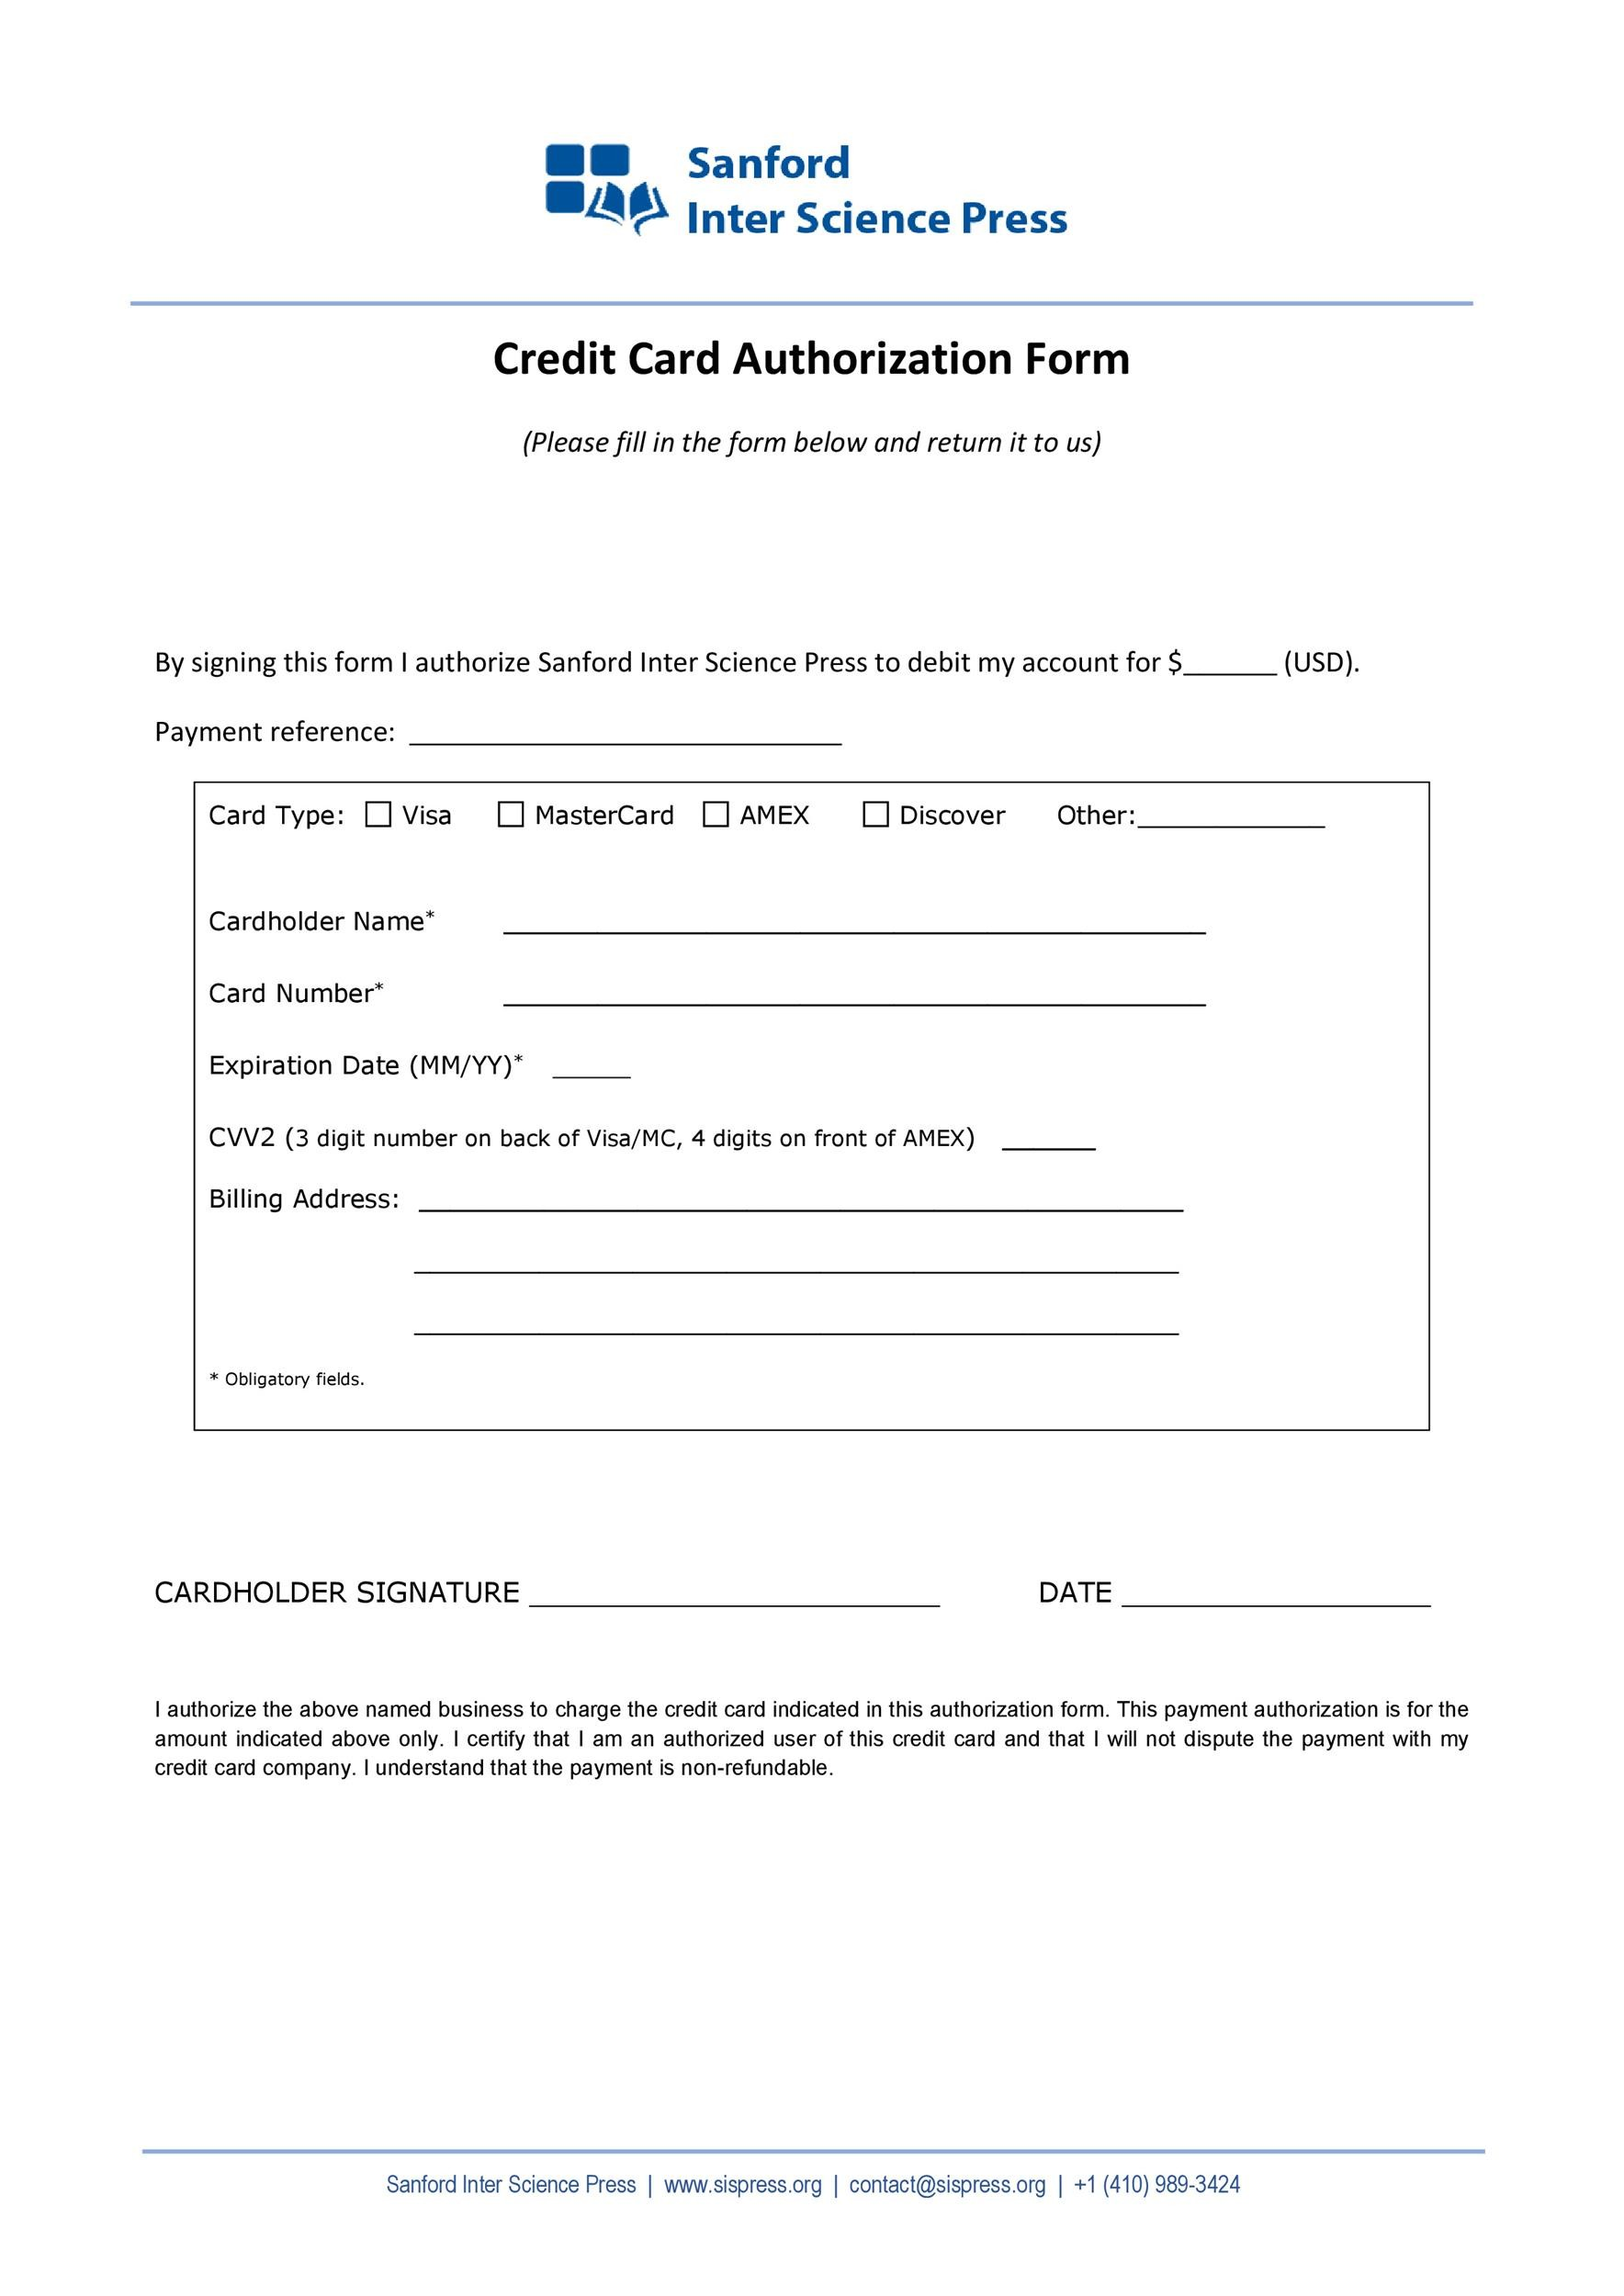 41 Credit Card Authorization Forms Templates {Ready-to-Use}